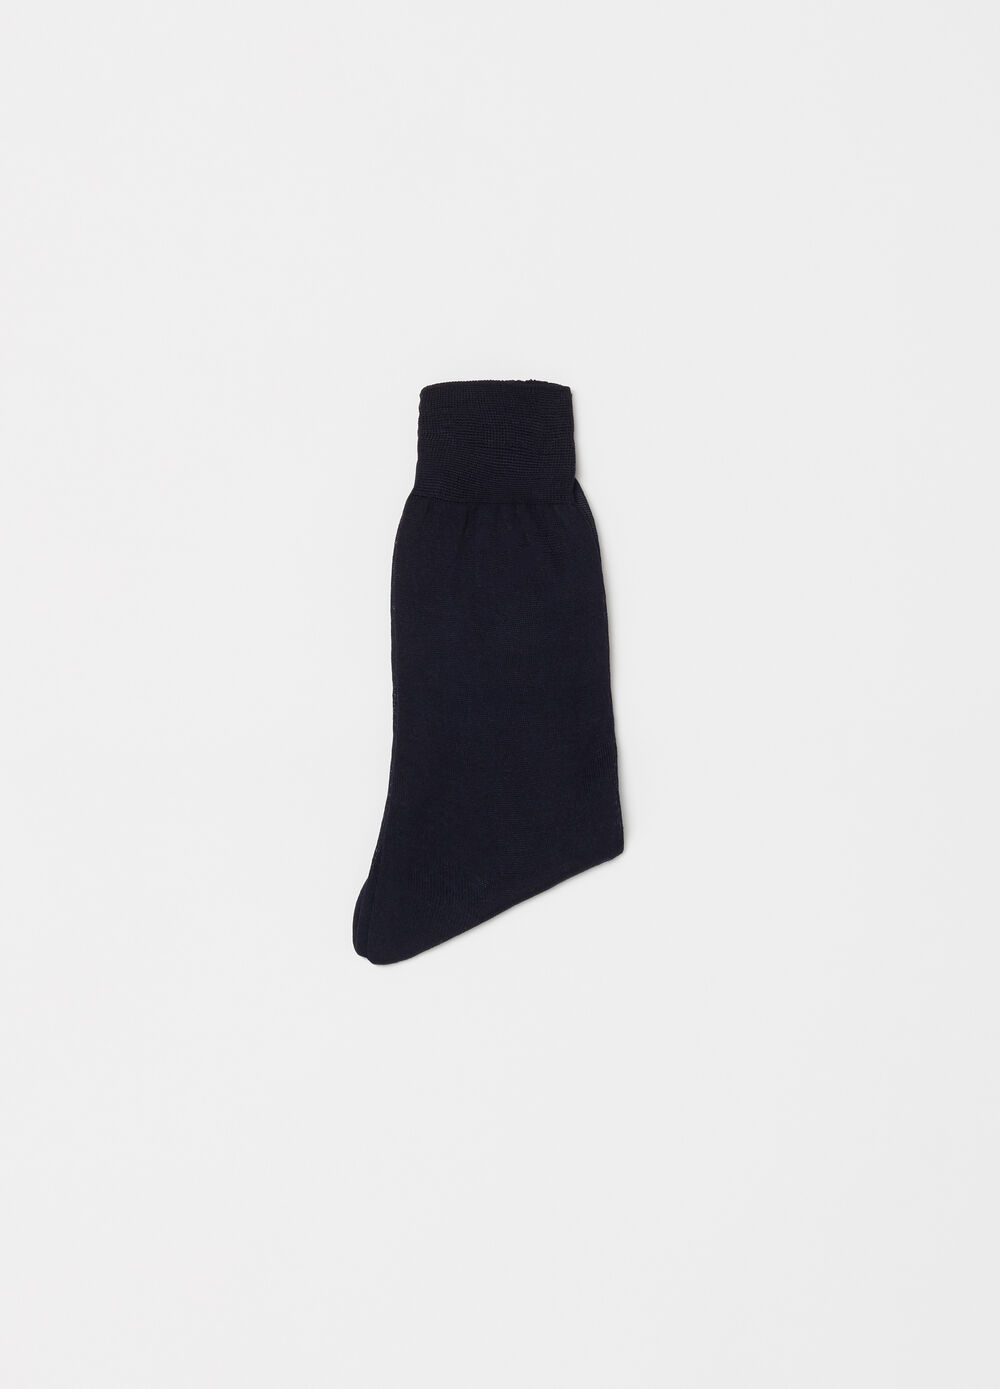 Short socks in plain knit lisle cotton